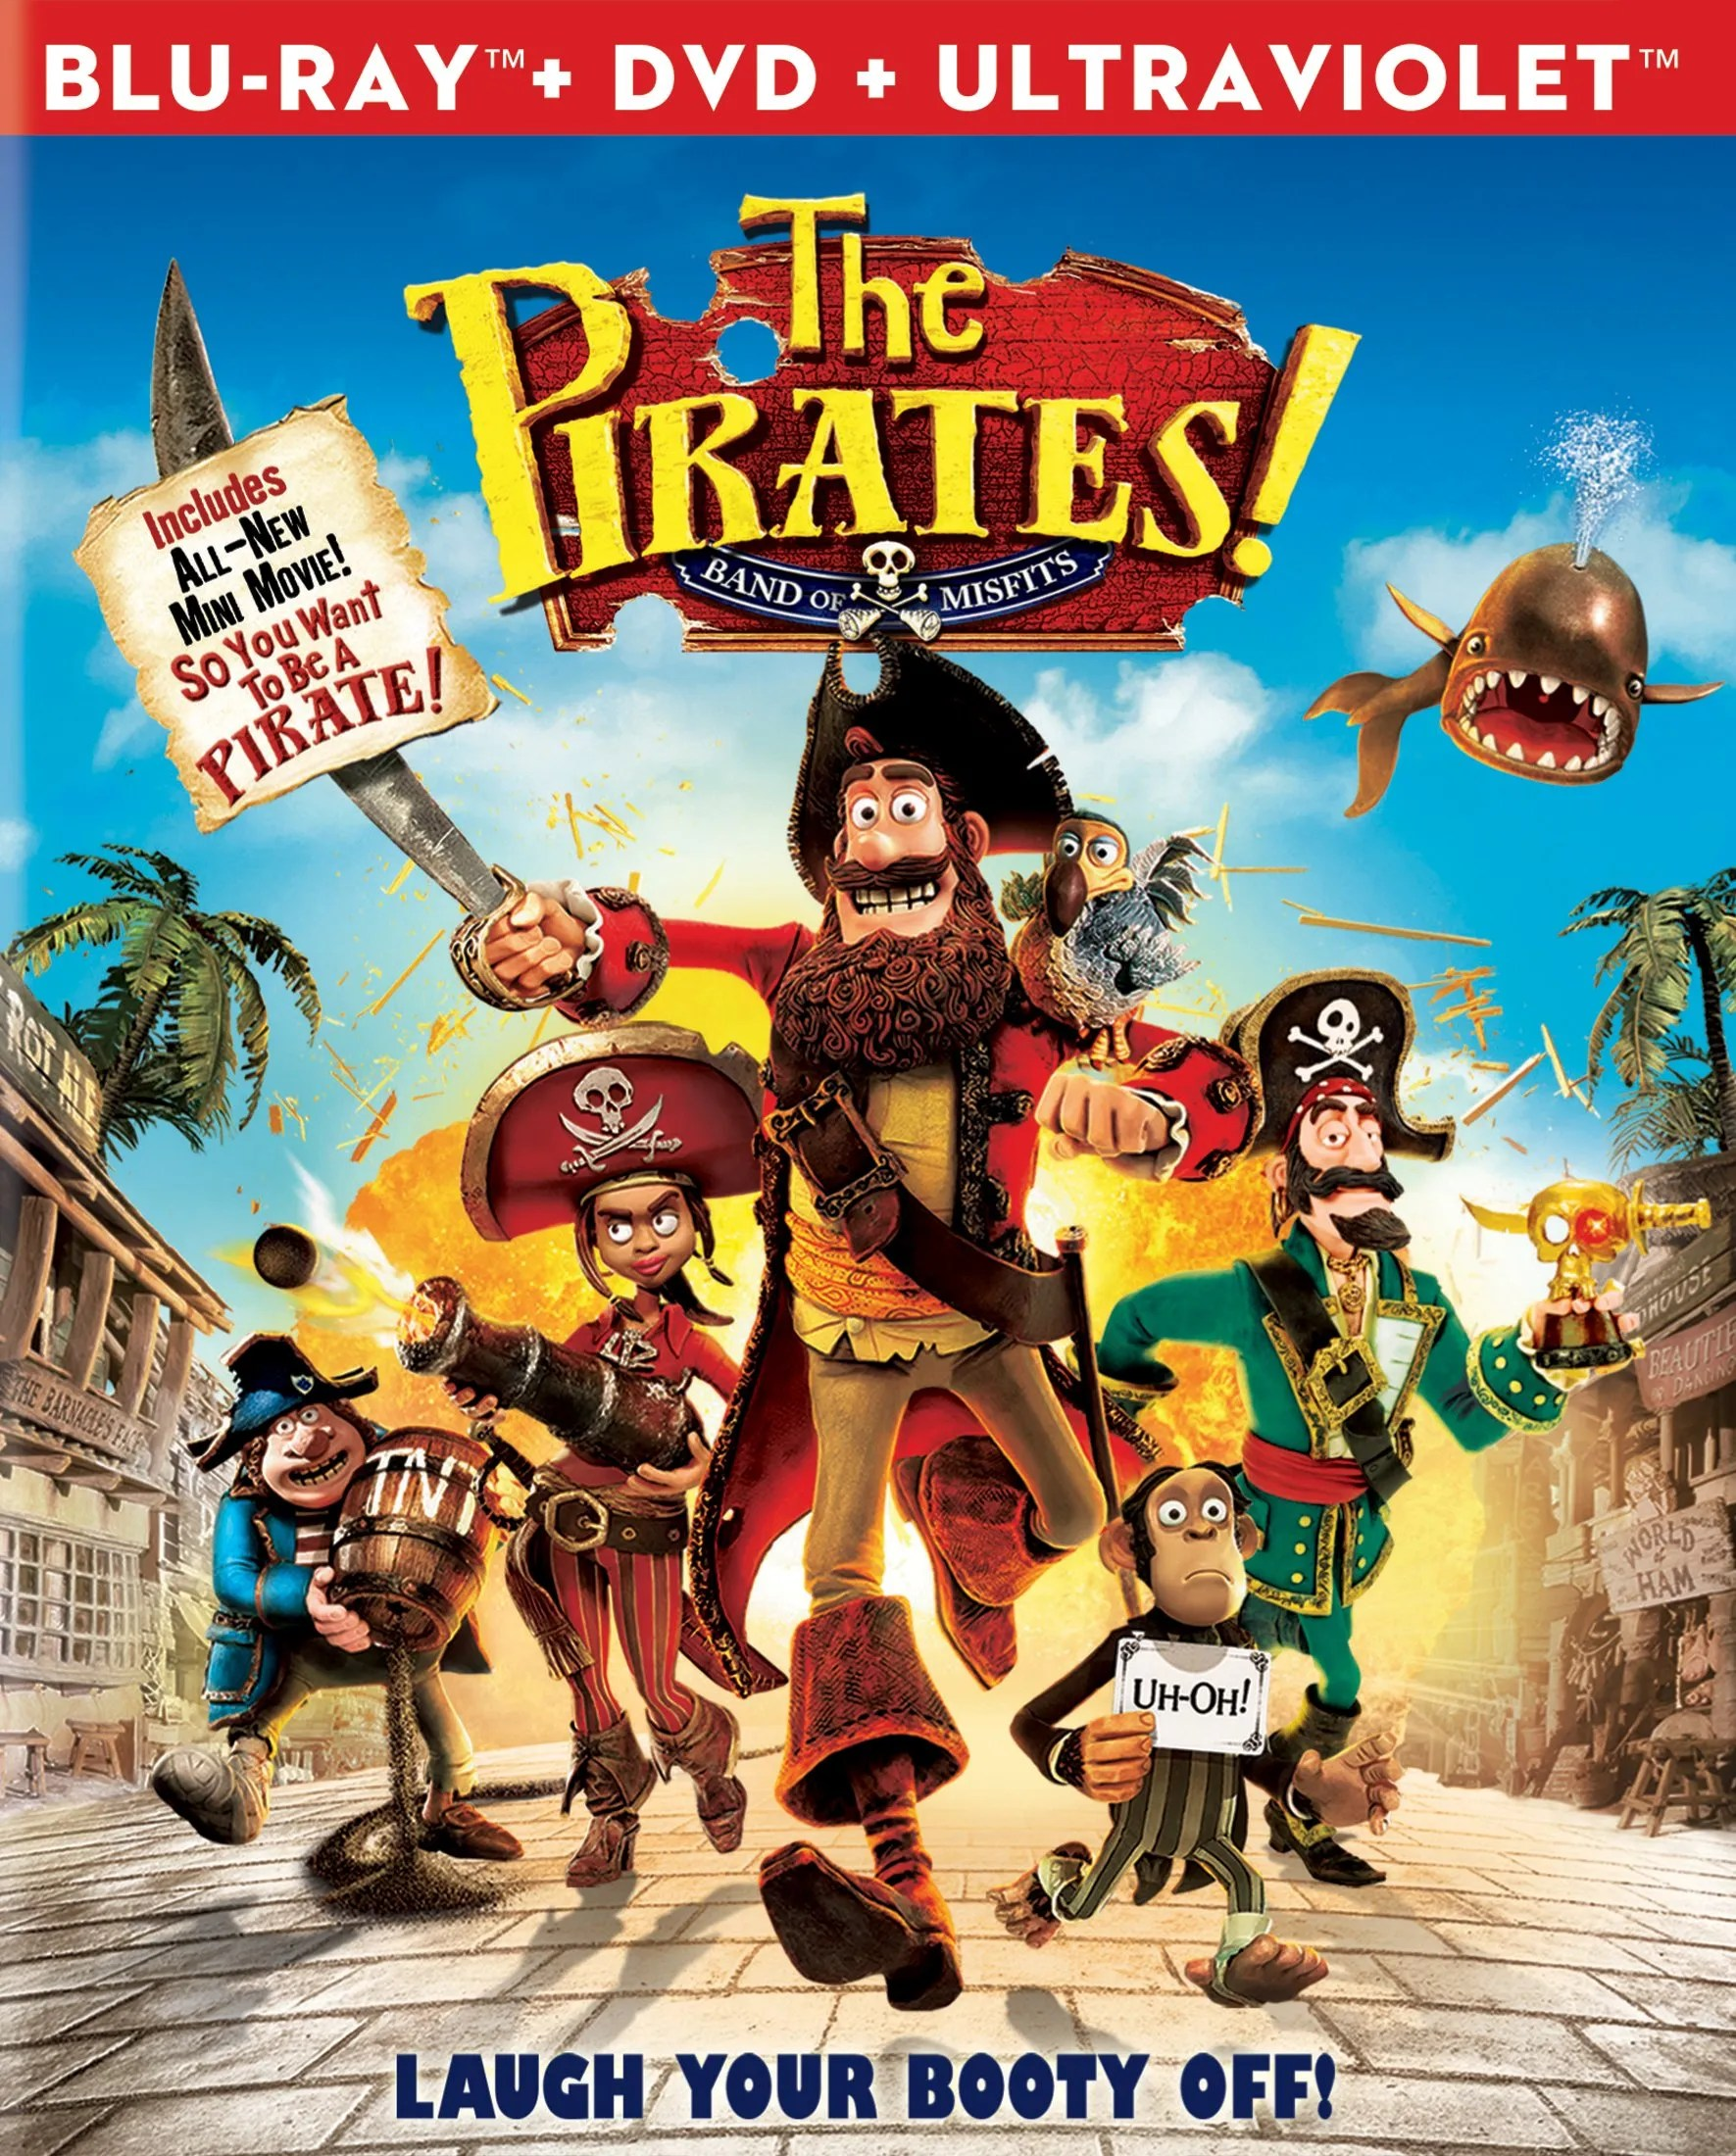 The Pirate Filme New Blu Rays Battleship The Pirates Band Of Misfits